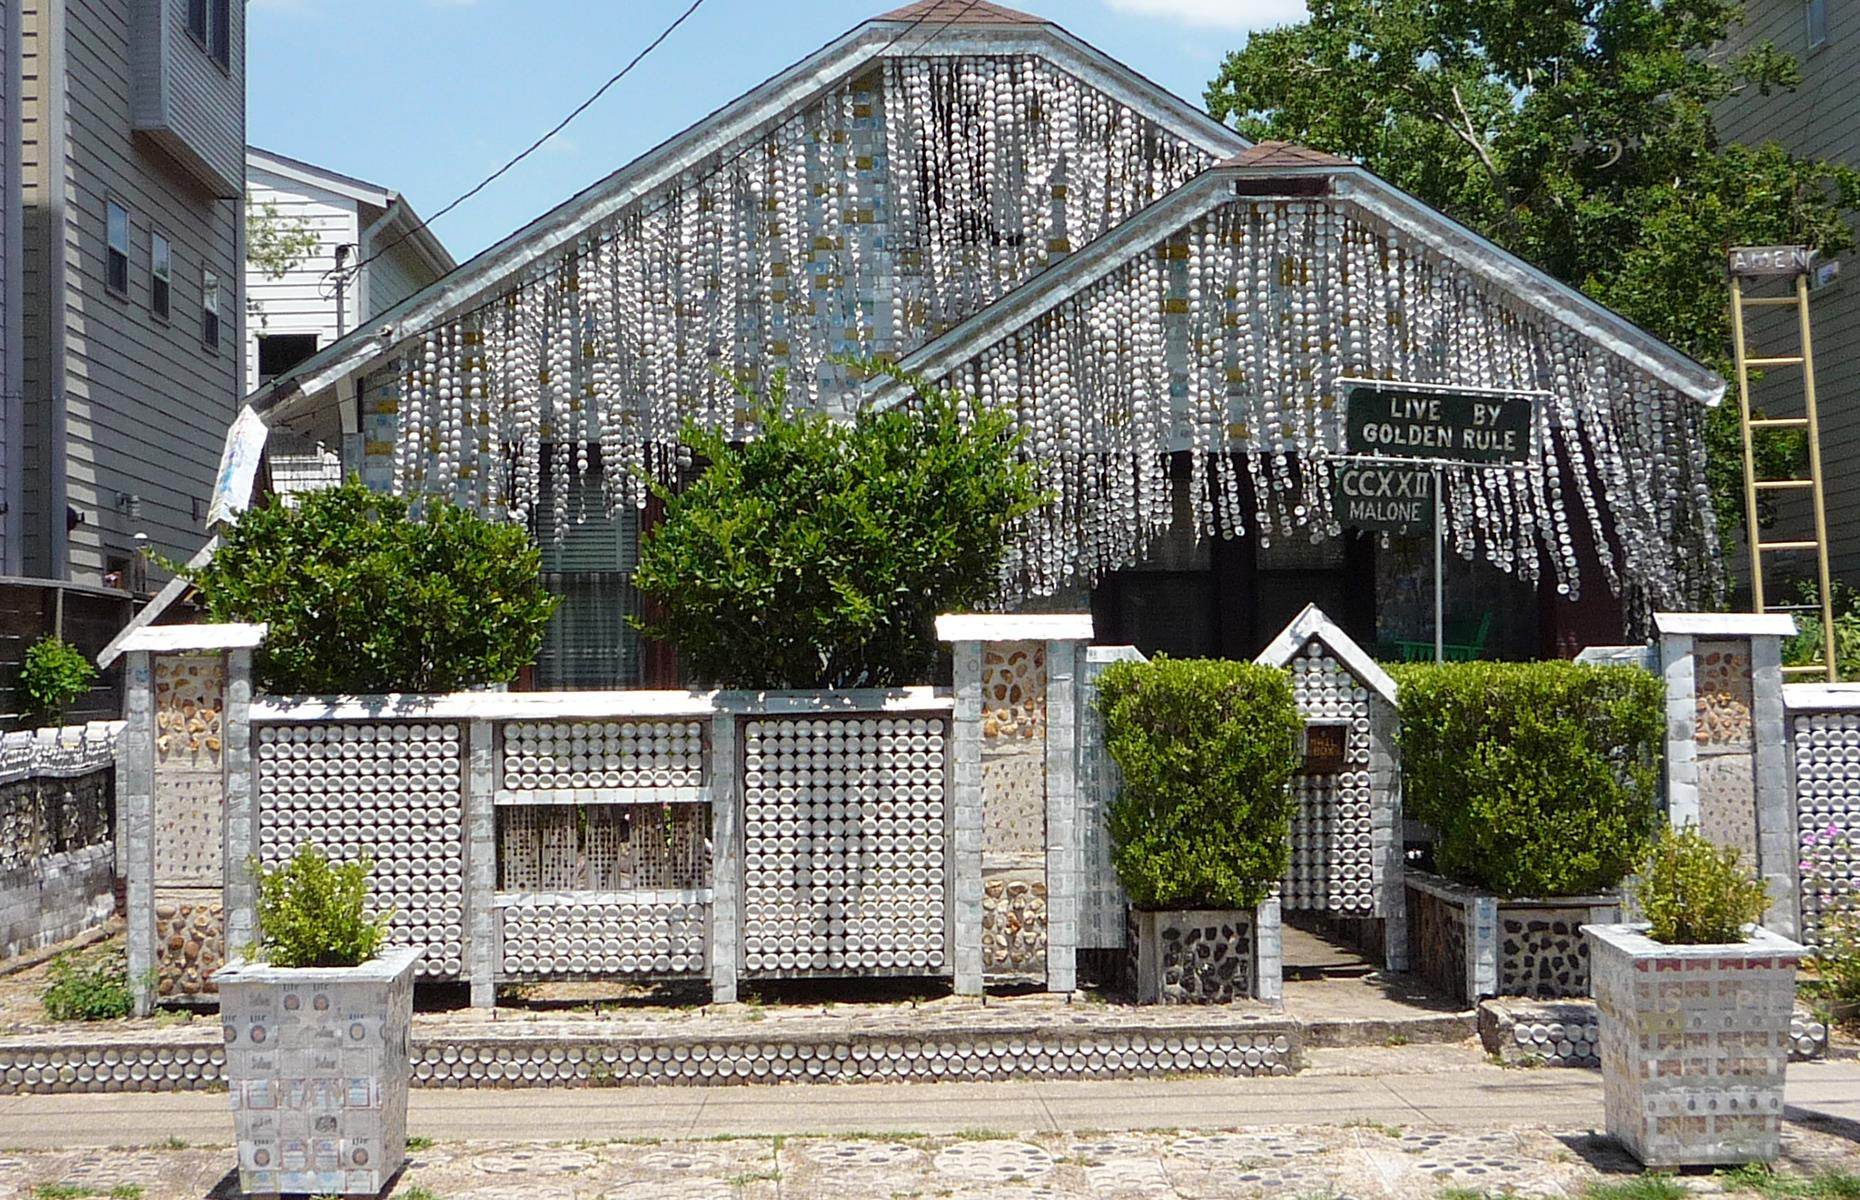 Slide 4 of 37: Flattened to the walls, hanging from the porch, decorating the front gate – beer cans, more than 50,000 in total, cover this Houston house. It's the vision of John Milkovisch, who began bedecking his family home with beer cans back in the 1960s. Though he abhorred waste, straight-talking, beer-loving Milkovisch insisted that his work was for no greater purpose than simple enjoyment. Now, both Milkovisch and his wife have passed away but the house is usually open to the public for tours.